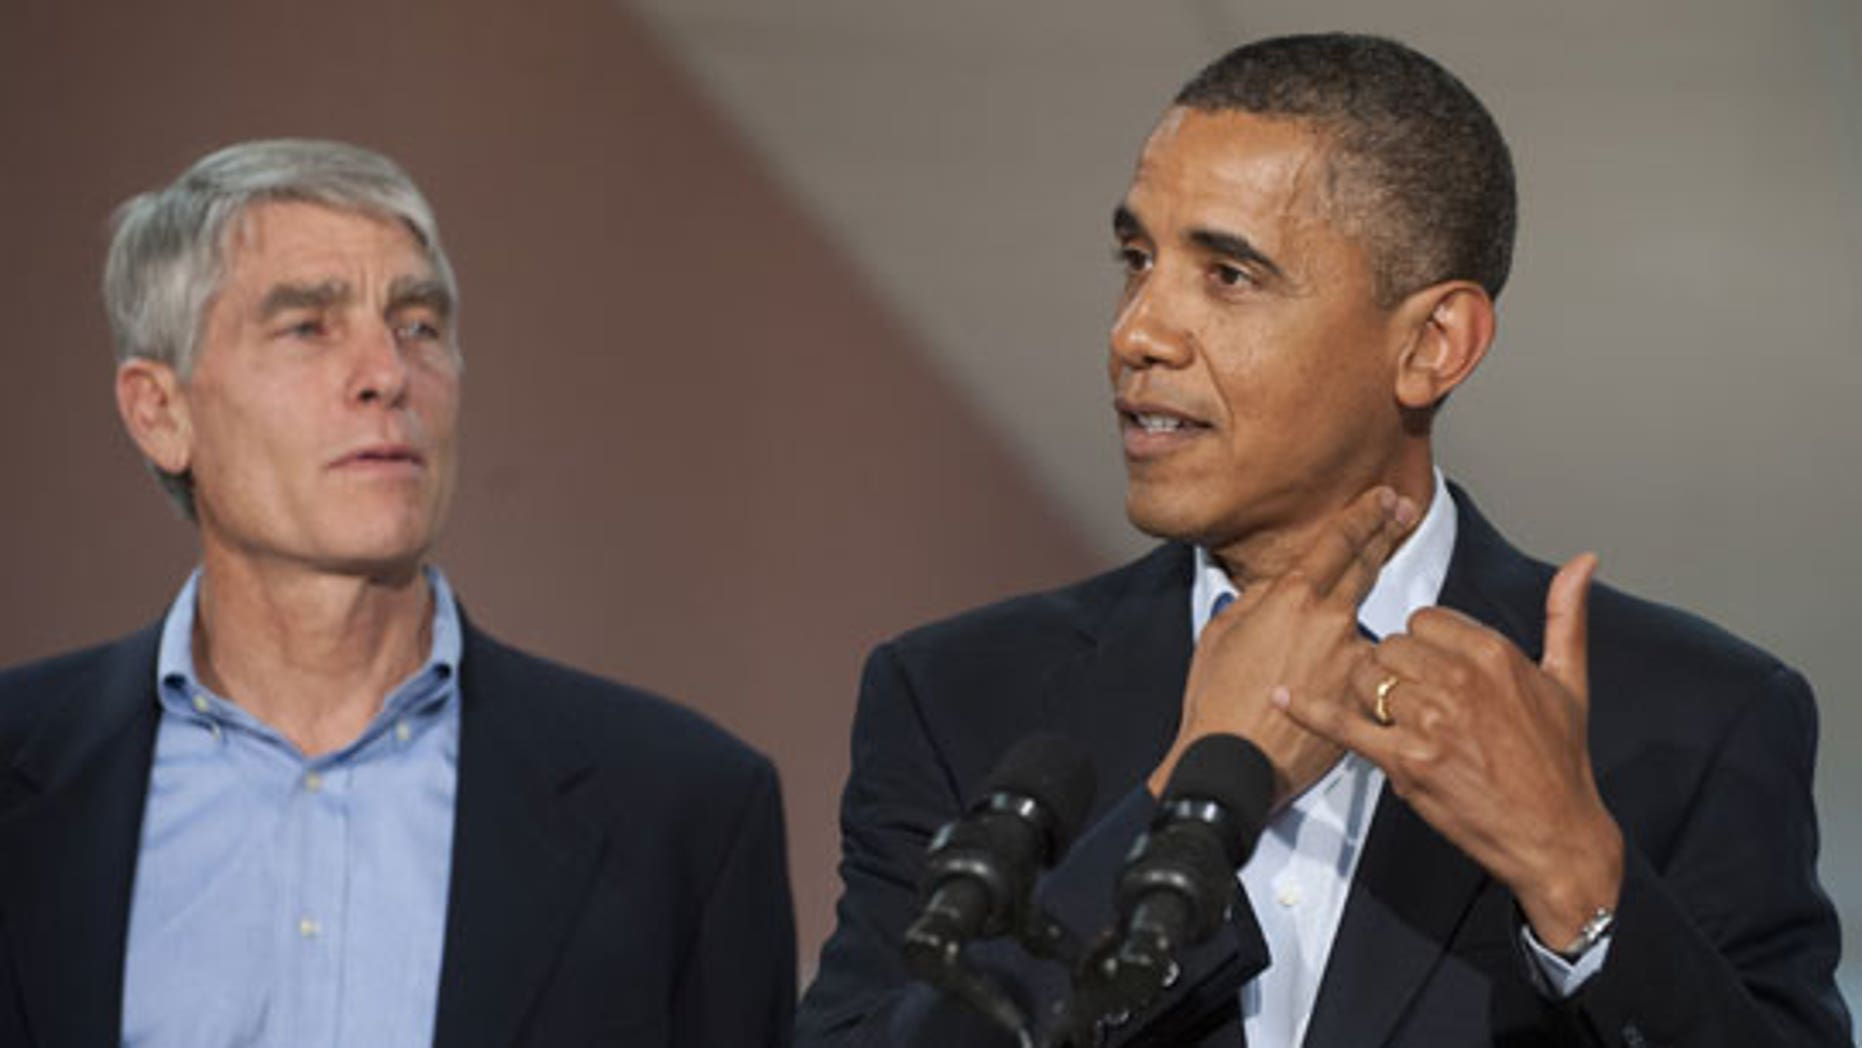 Udall and Obama. By Saul Loeb, AFP/Getty Images.